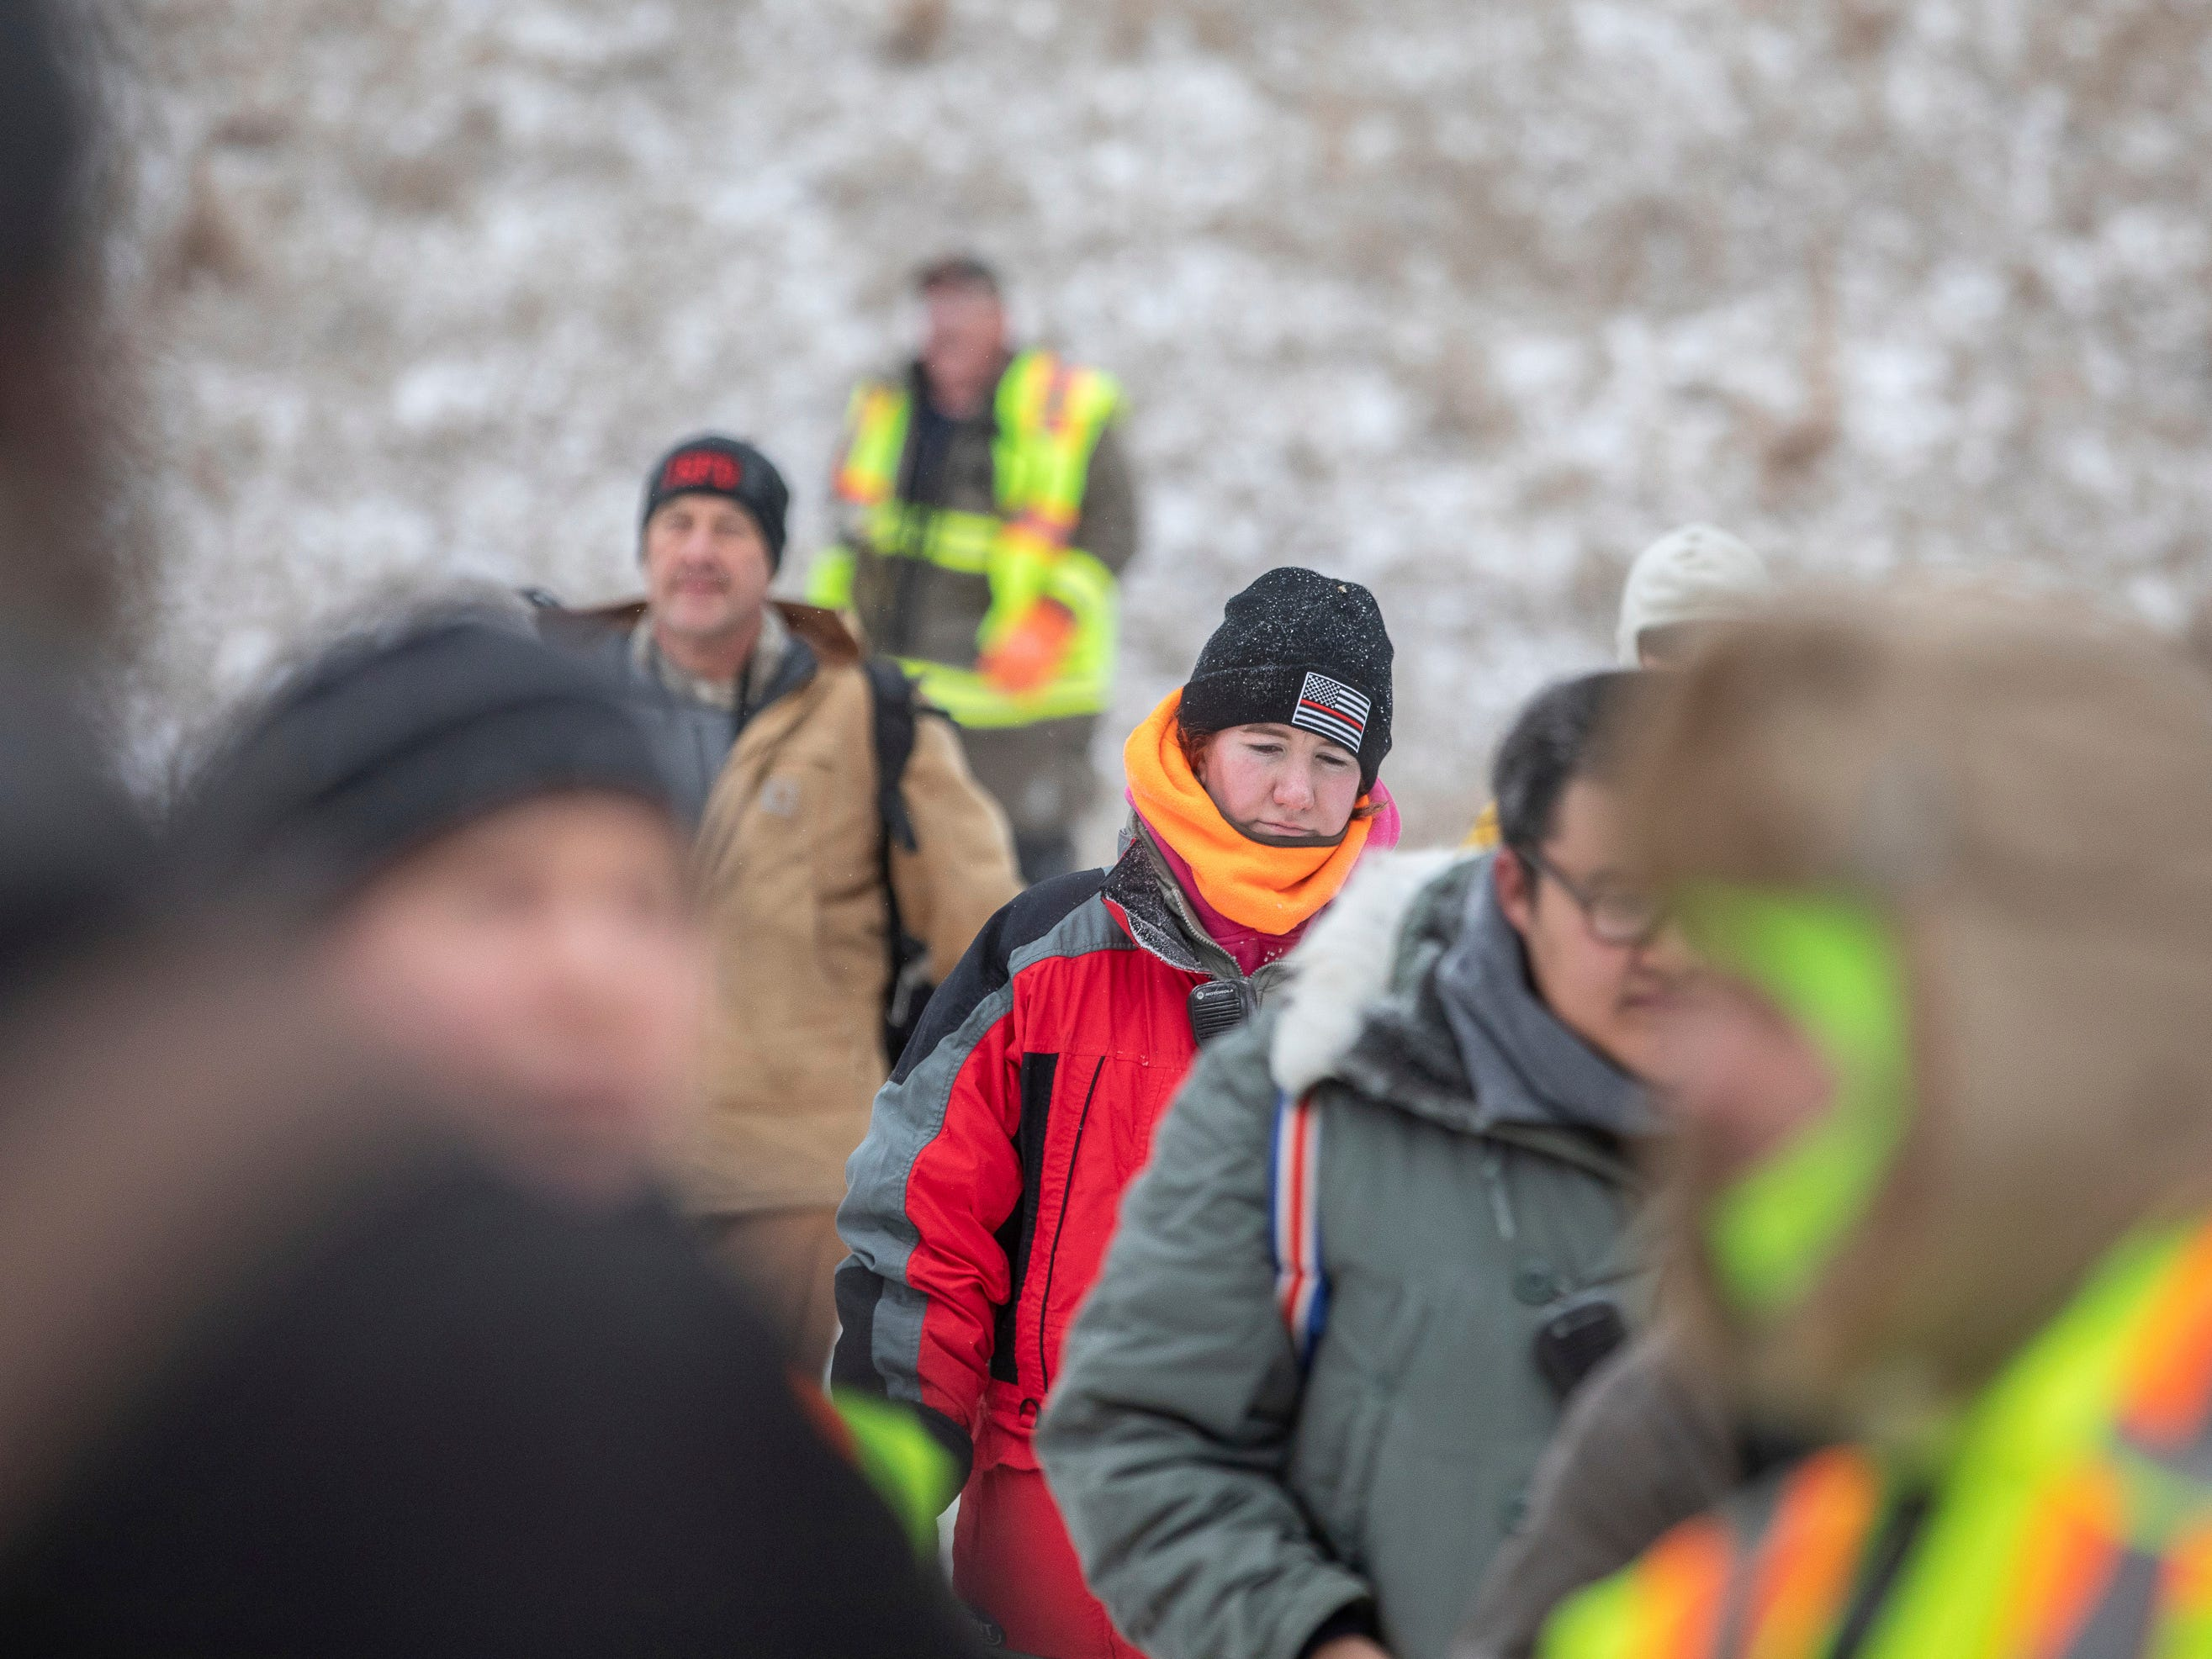 Searchers gather in a parking lot at the Black Hills Children's Home near Rockerville, S.D., on Tuesday, Feb. 5, 2019, after looking for Serenity Dennard, a 9-year-old girl who was last seen Sunday morning leaving the Children's Home. Officials are encouraging anyone living in the Rockerville, Foster Gulch and Highway 16 area to check their property. (Ryan Hermens/Rapid City Journal via AP)